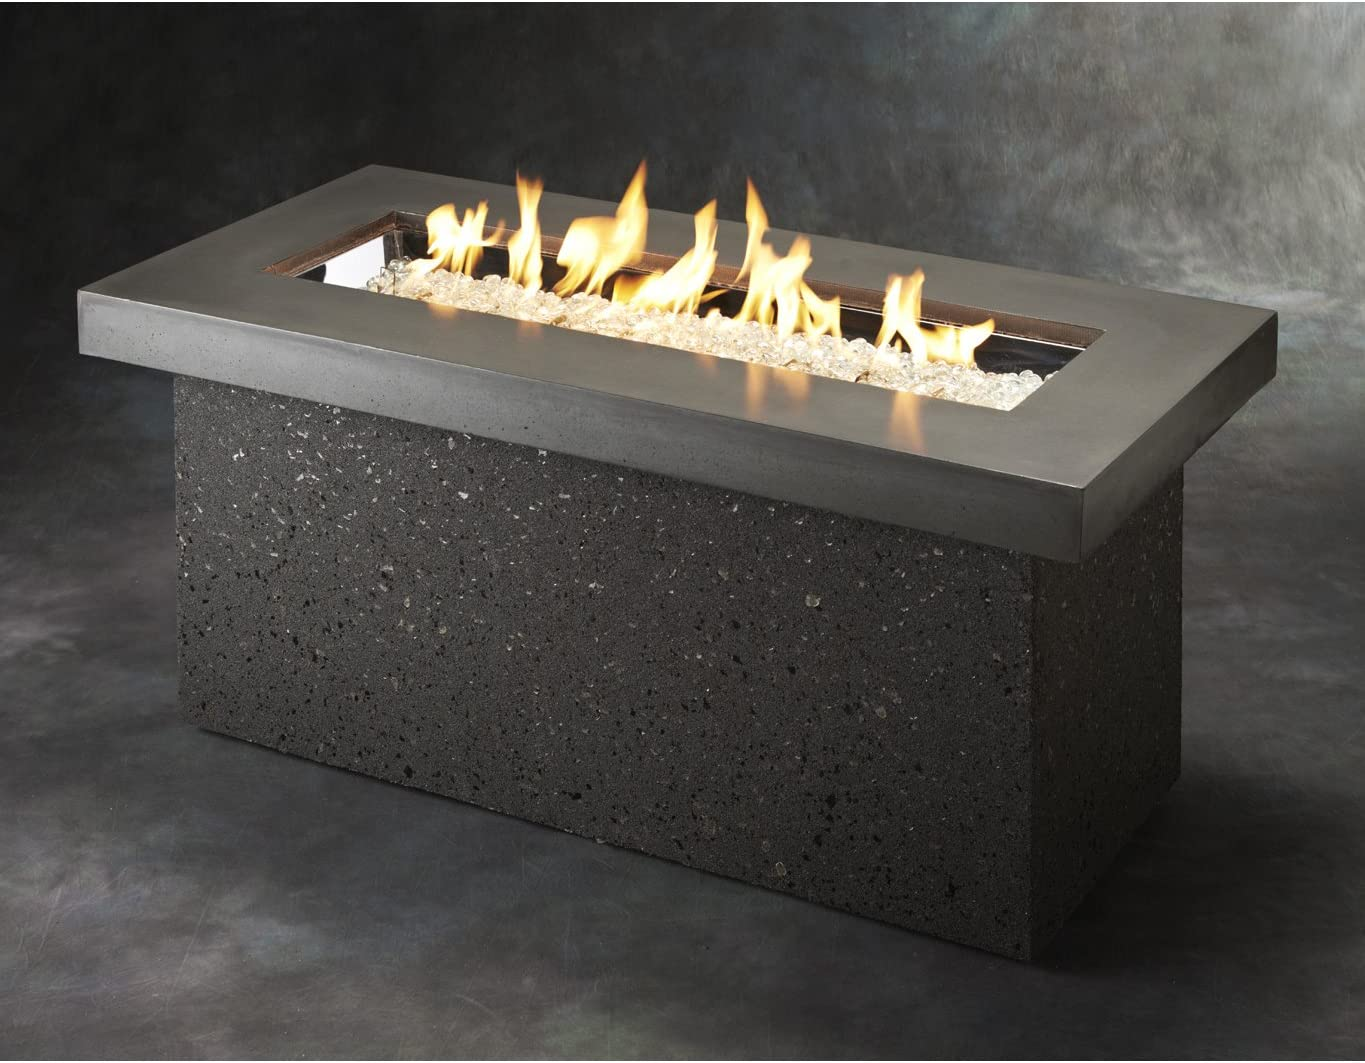 Outdoor Great Room Key Largo Fire Pit with Midnight Mist Top and Grey Base Multibox Kit